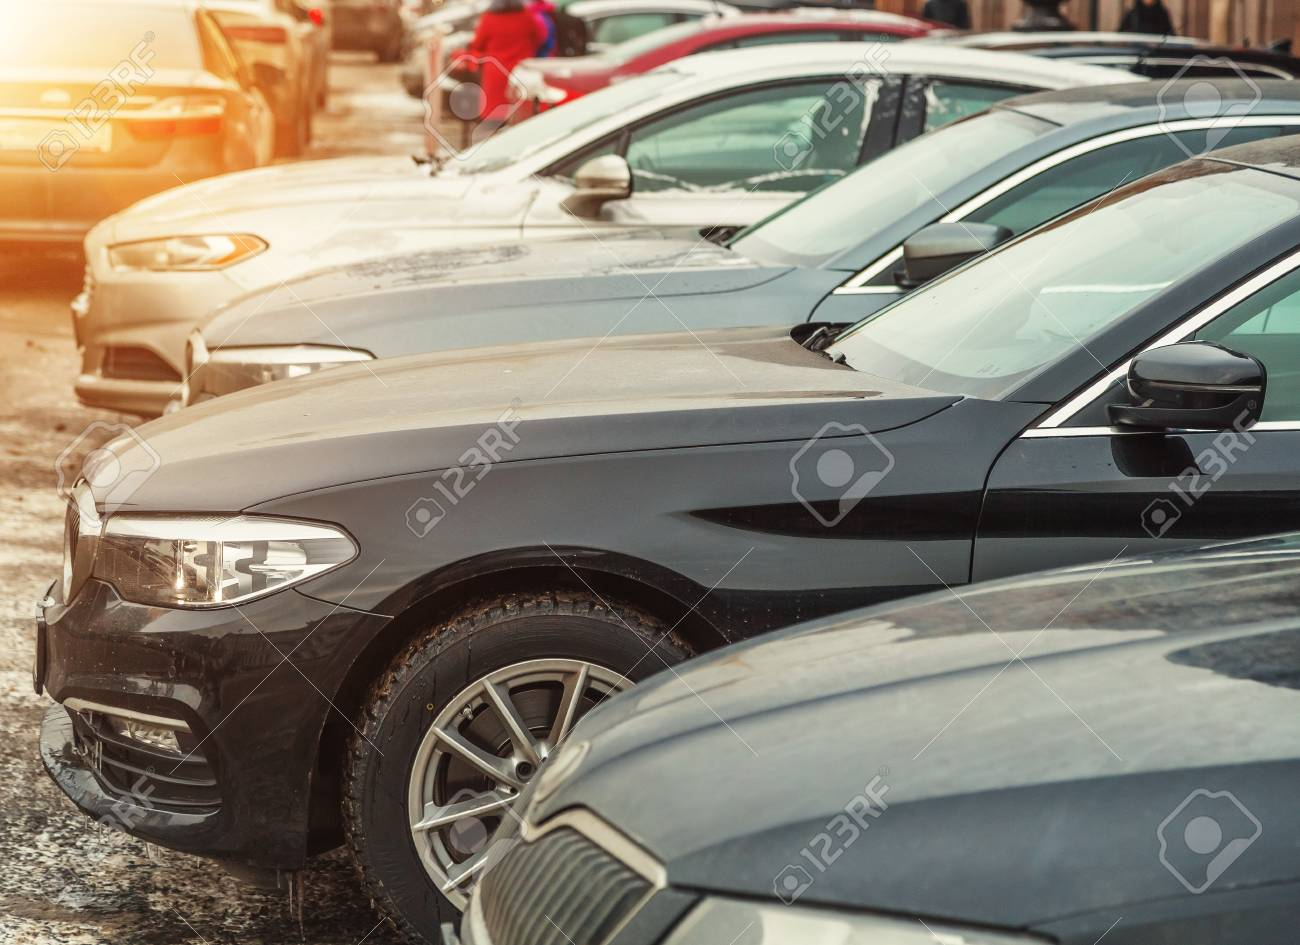 3c04aeac59 Parking used cars in winter in Europe Stock Photo - 93744042